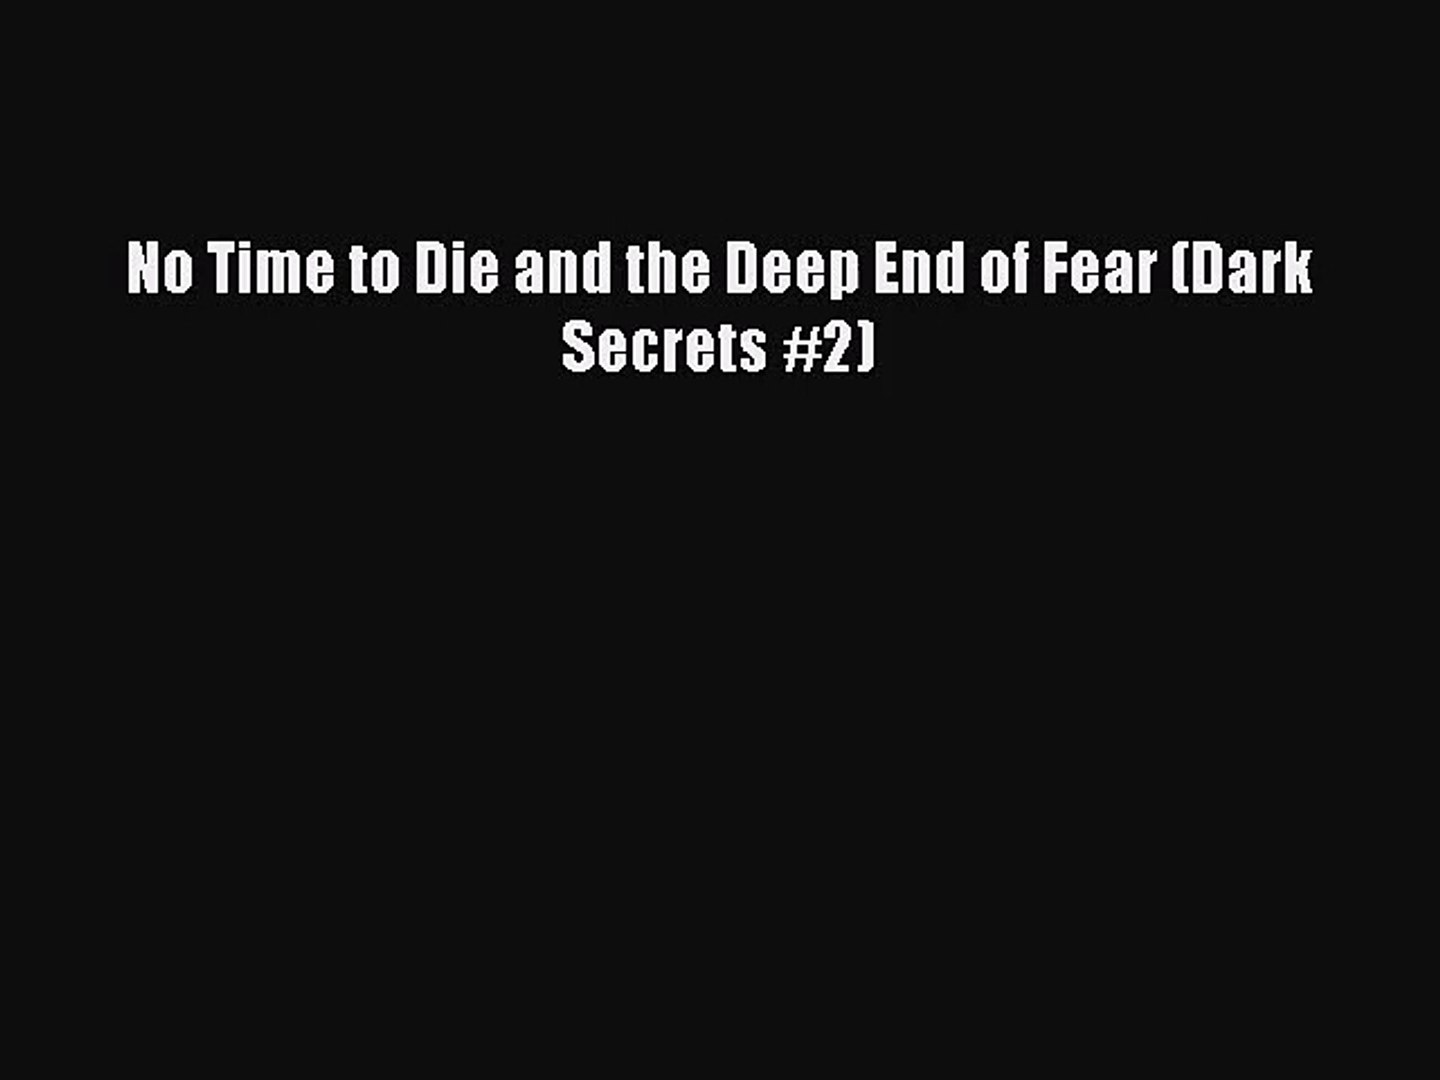 Dark Secrets 2 No Time to Die; The Deep End of Fear